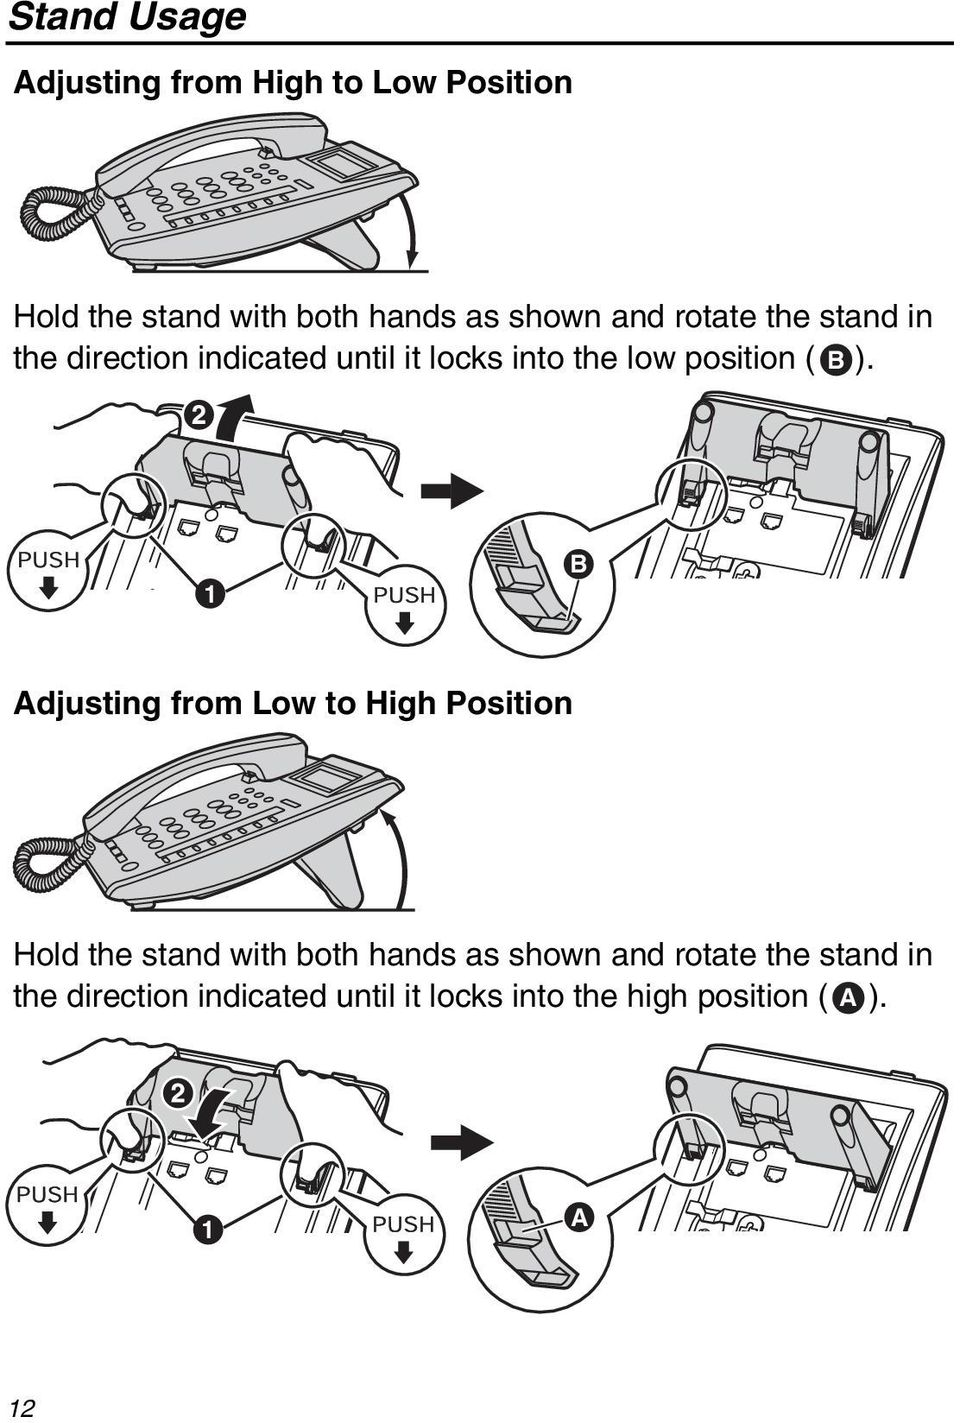 ). 1 B Adjusting from Low to High Position Hold the stand with both hands as shown and